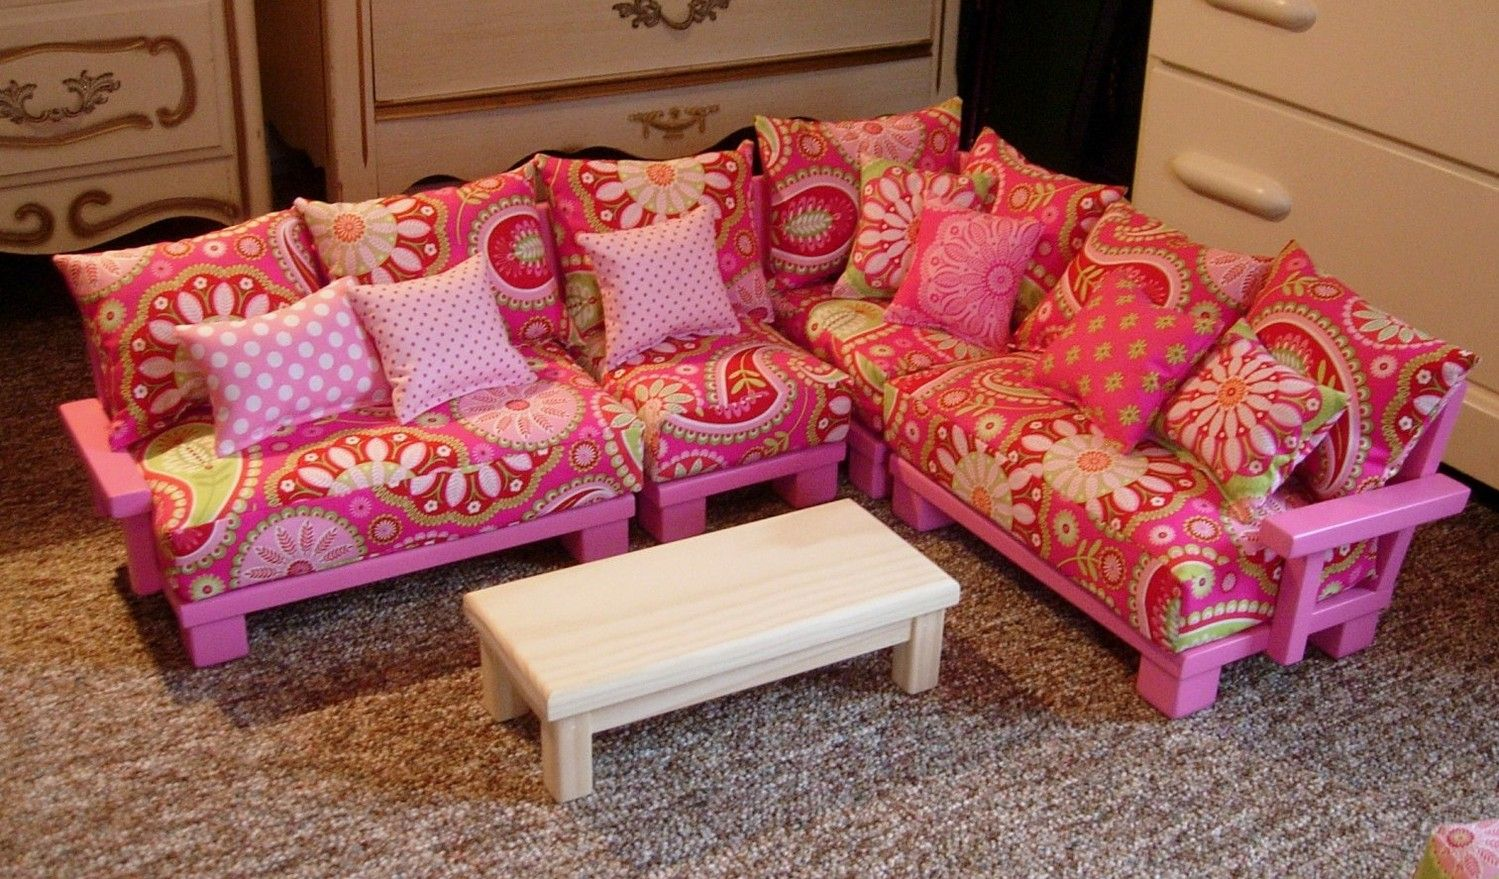 Doll Couch Chair Sectional Living Room Furniture For American Girl Doll American Girl Doll Furniture American Girl Furniture American Girl Doll House